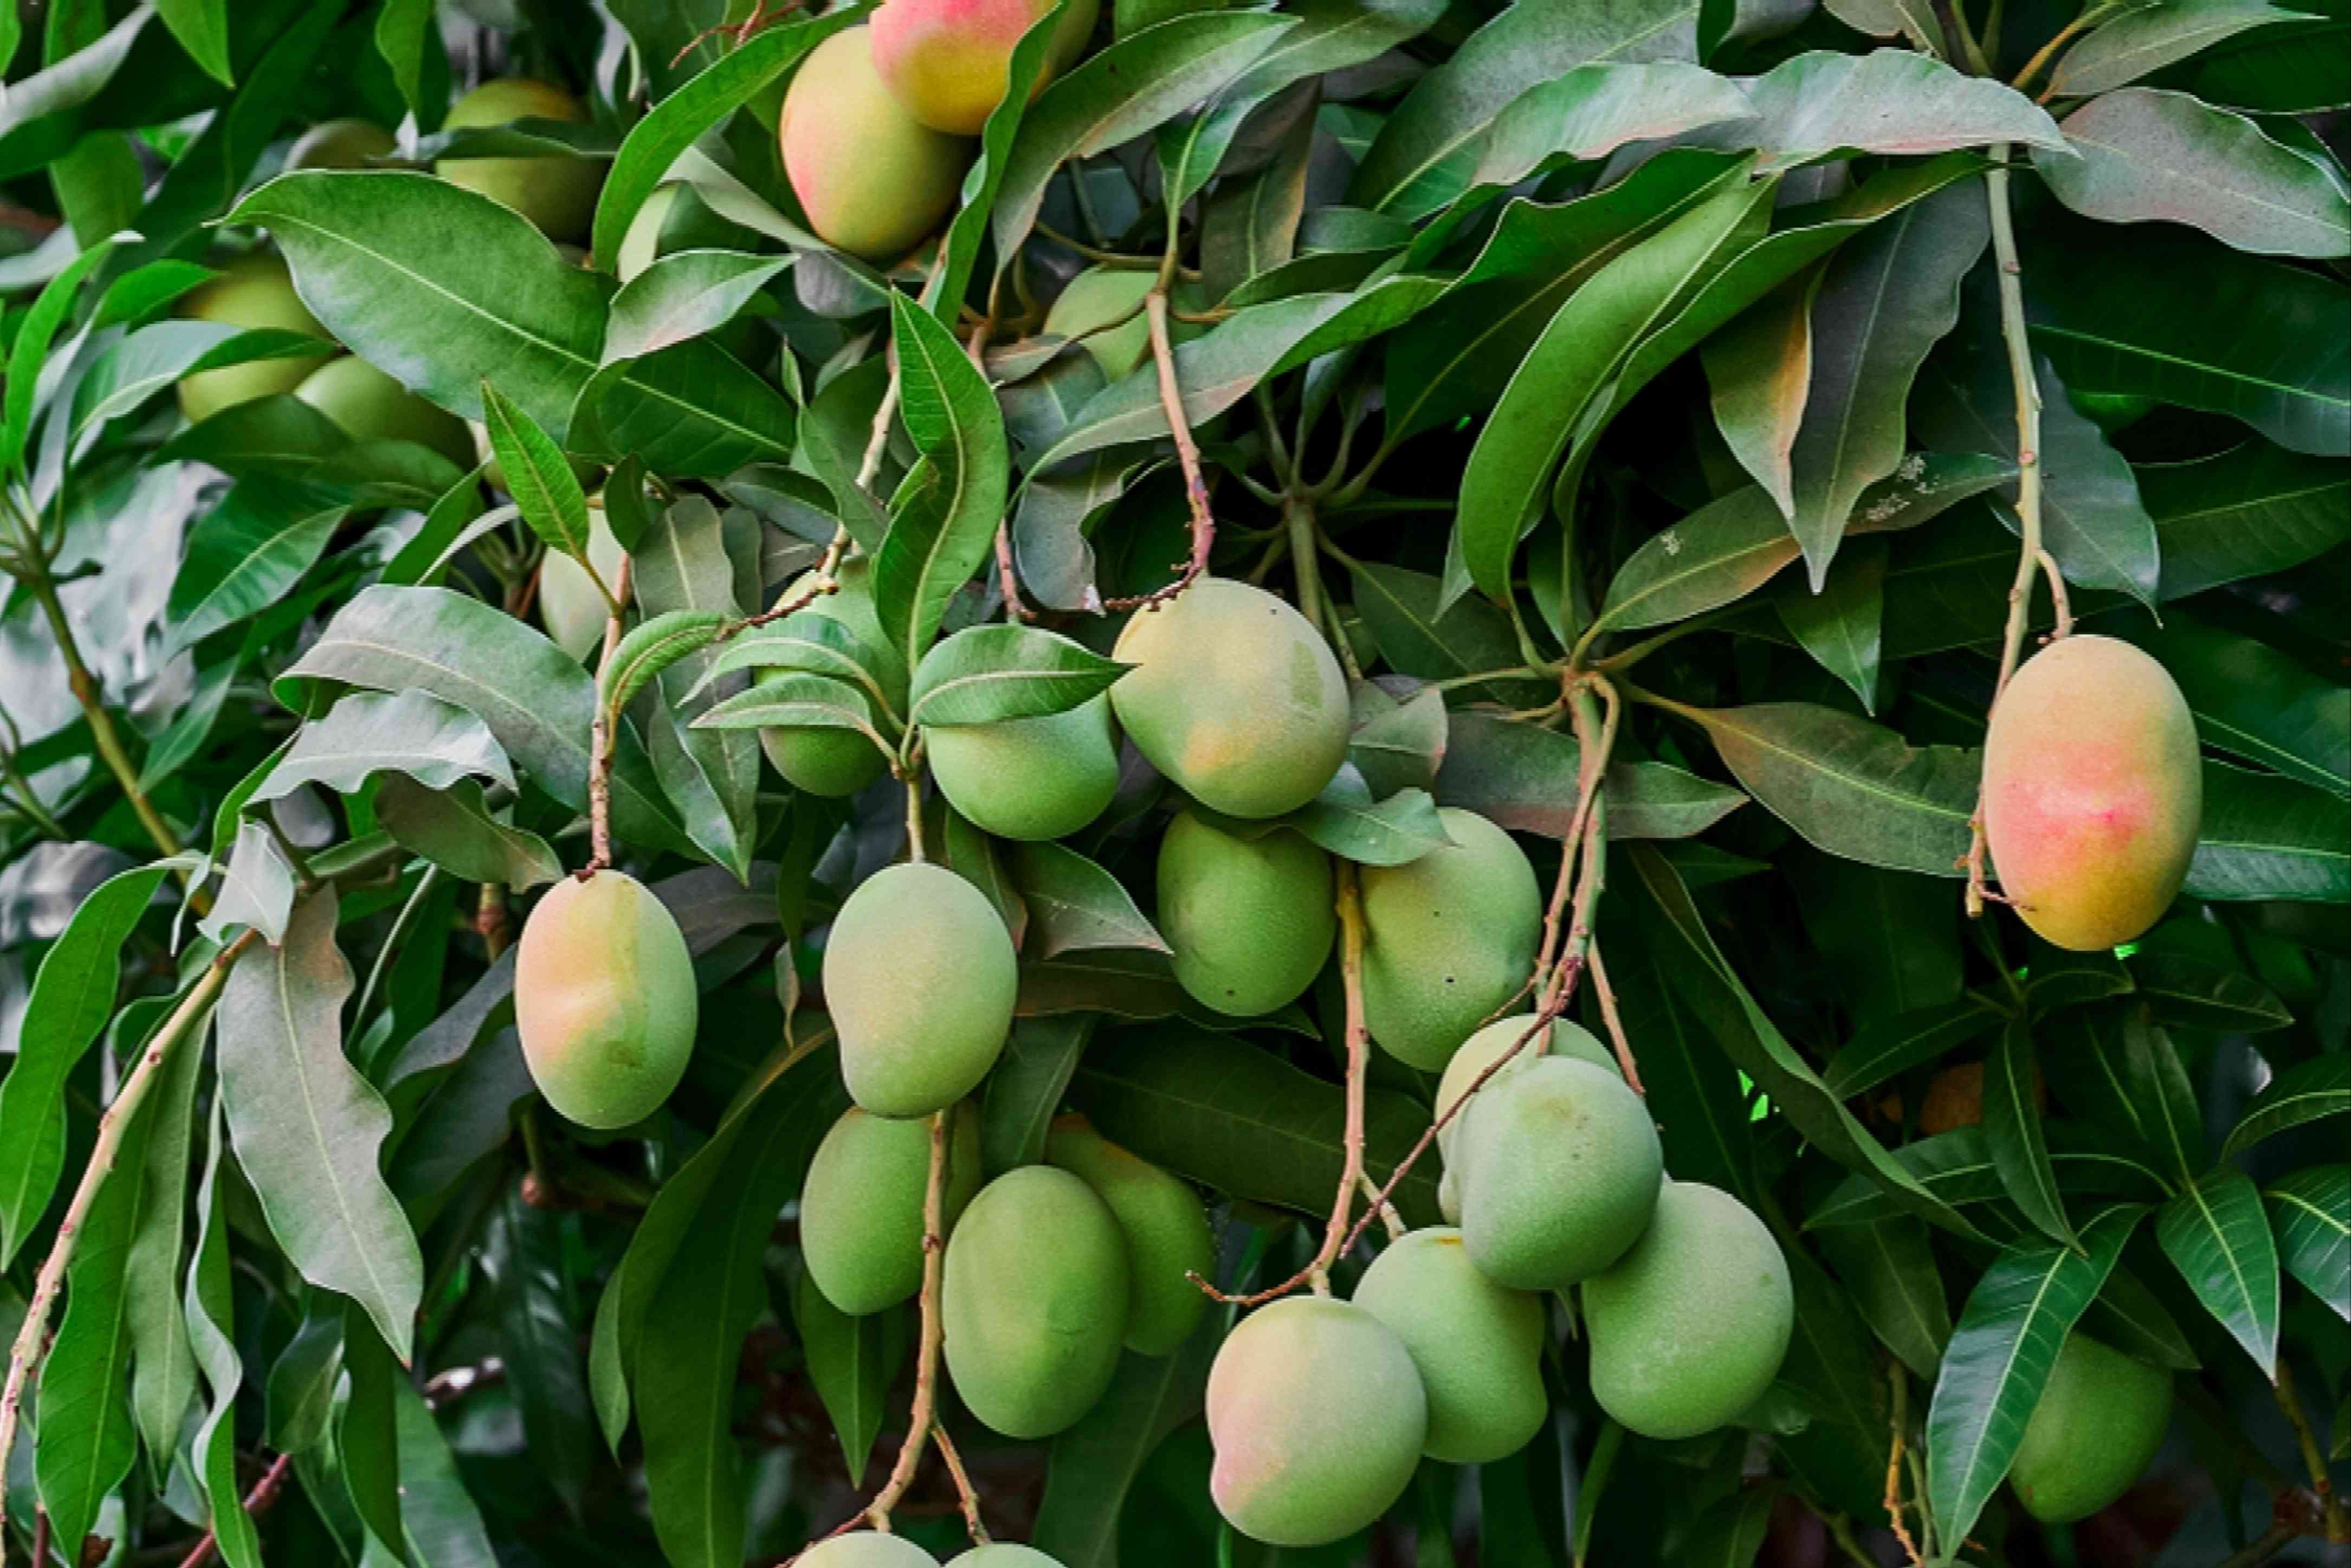 Green and yellow mangoes hanging from tree branches